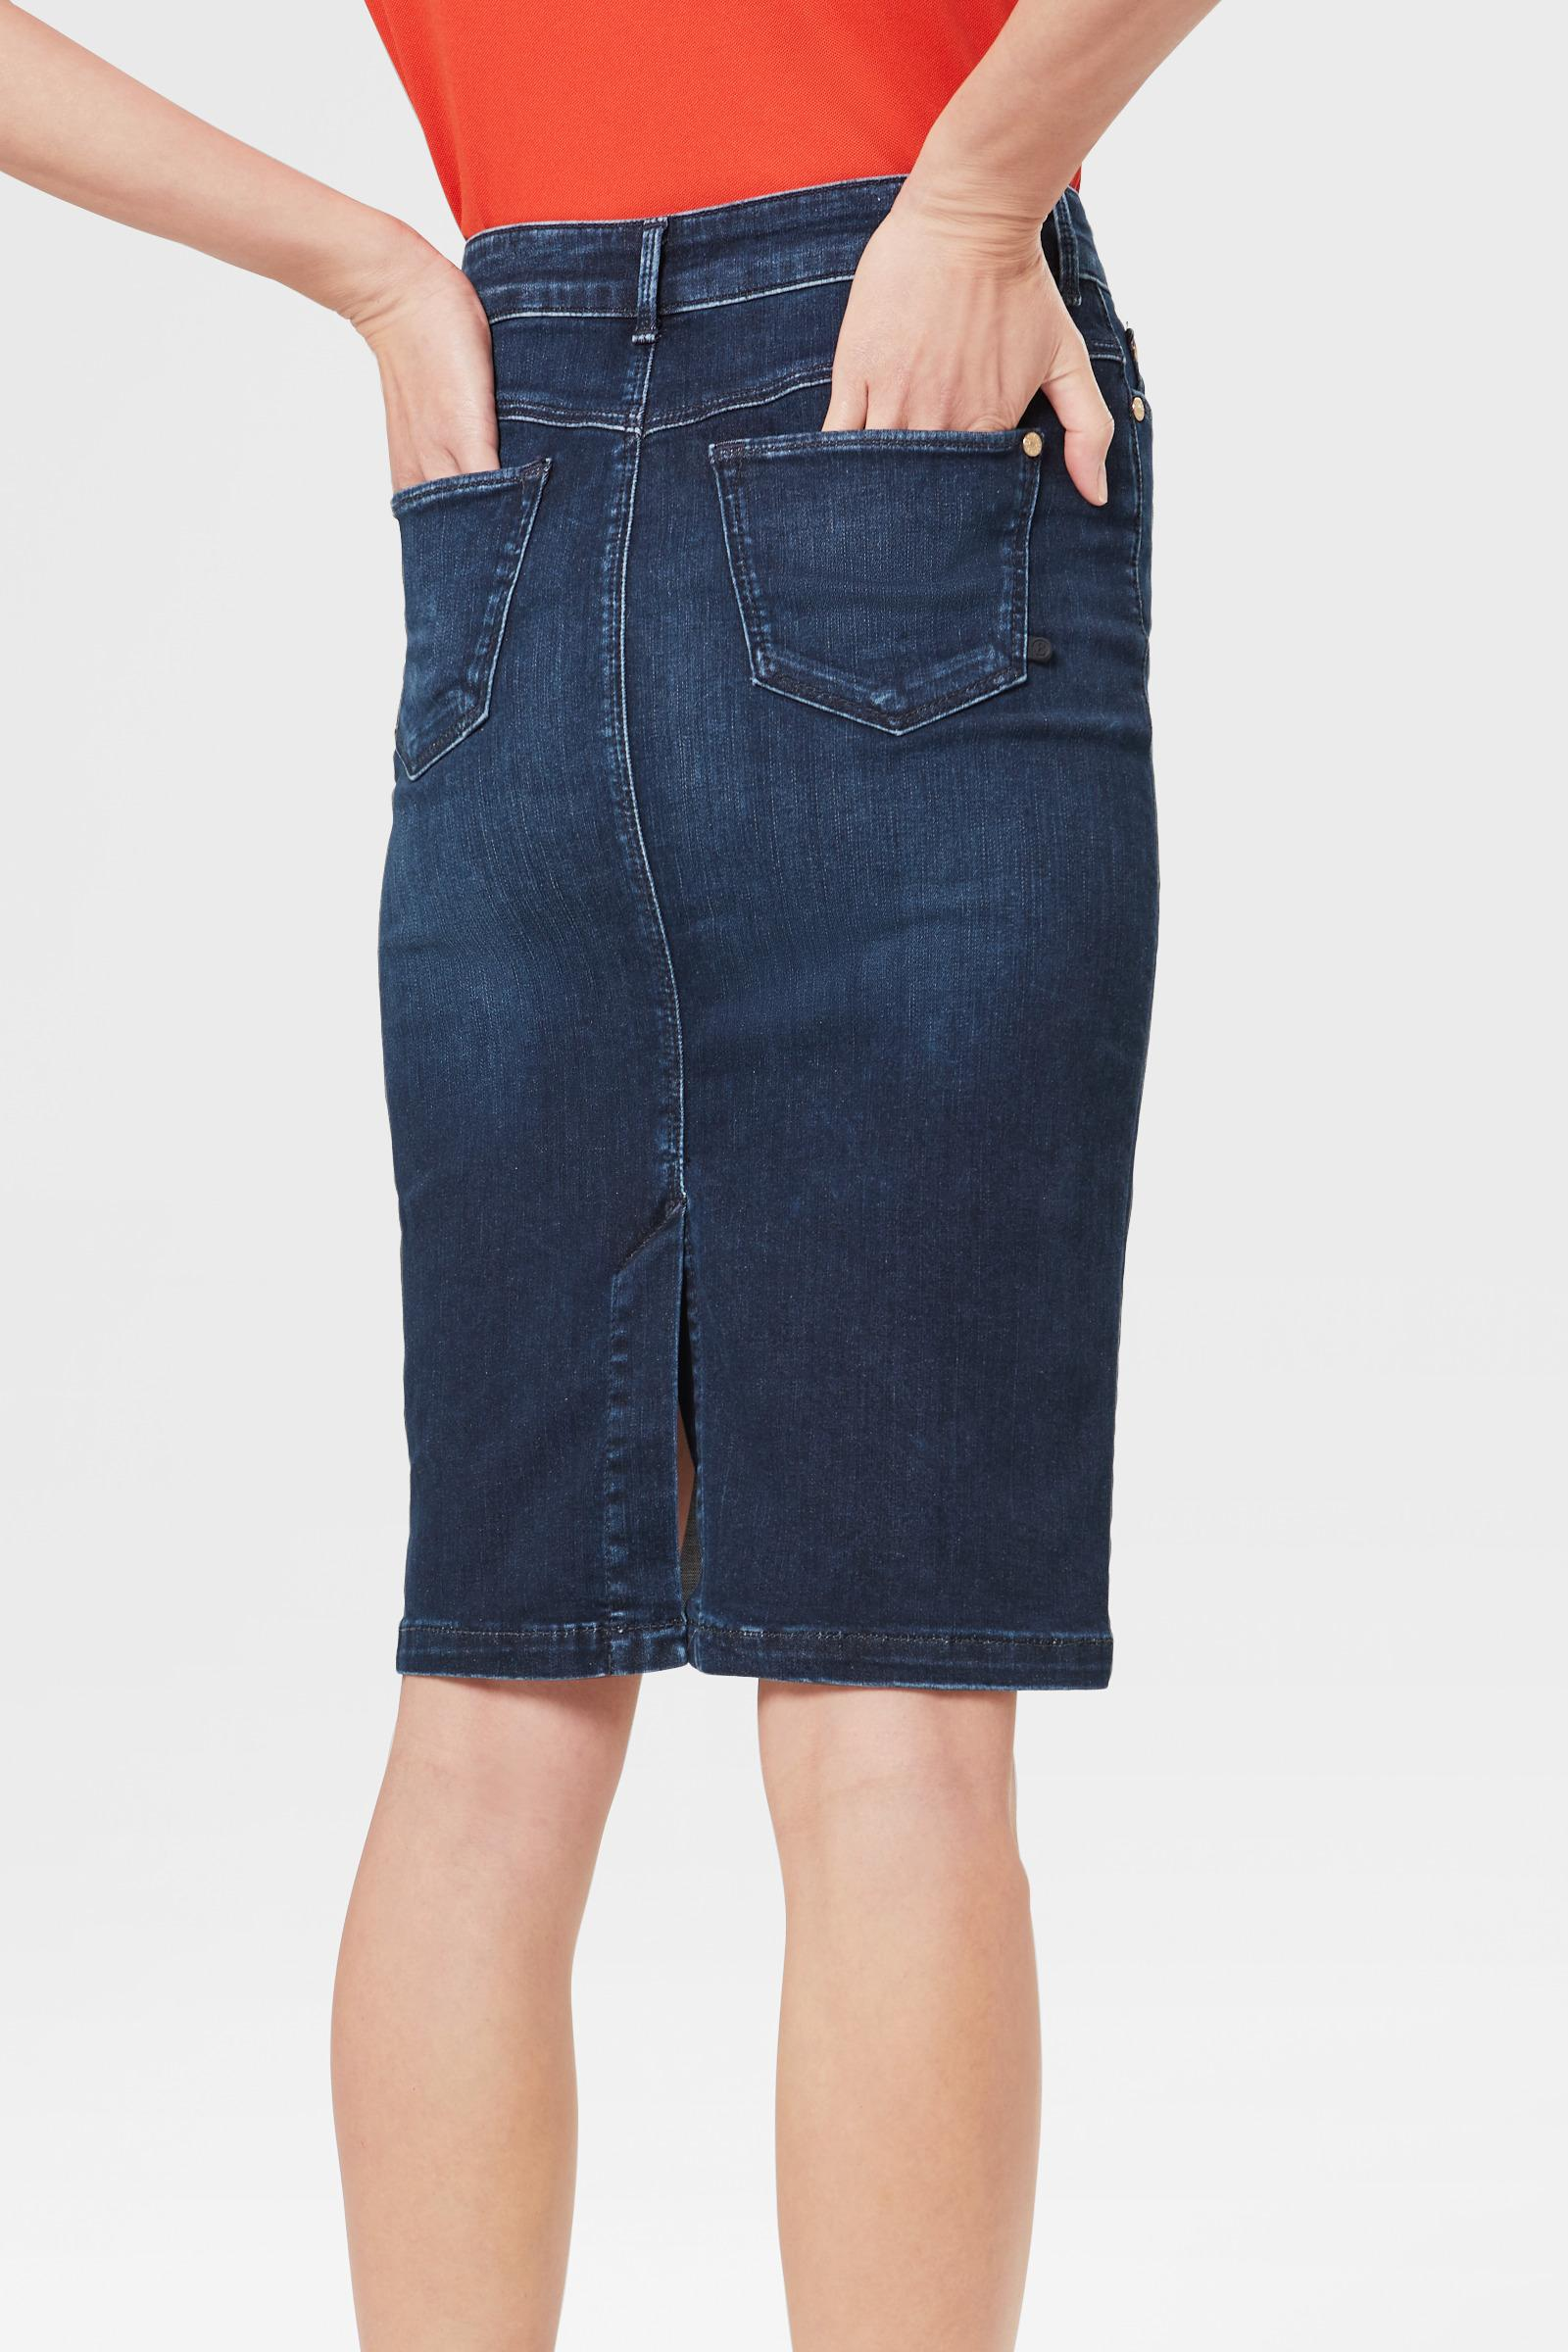 ef7b7ca525ba45 Bogner - Jodie Skirt In Denim Blue - Lyst. View fullscreen